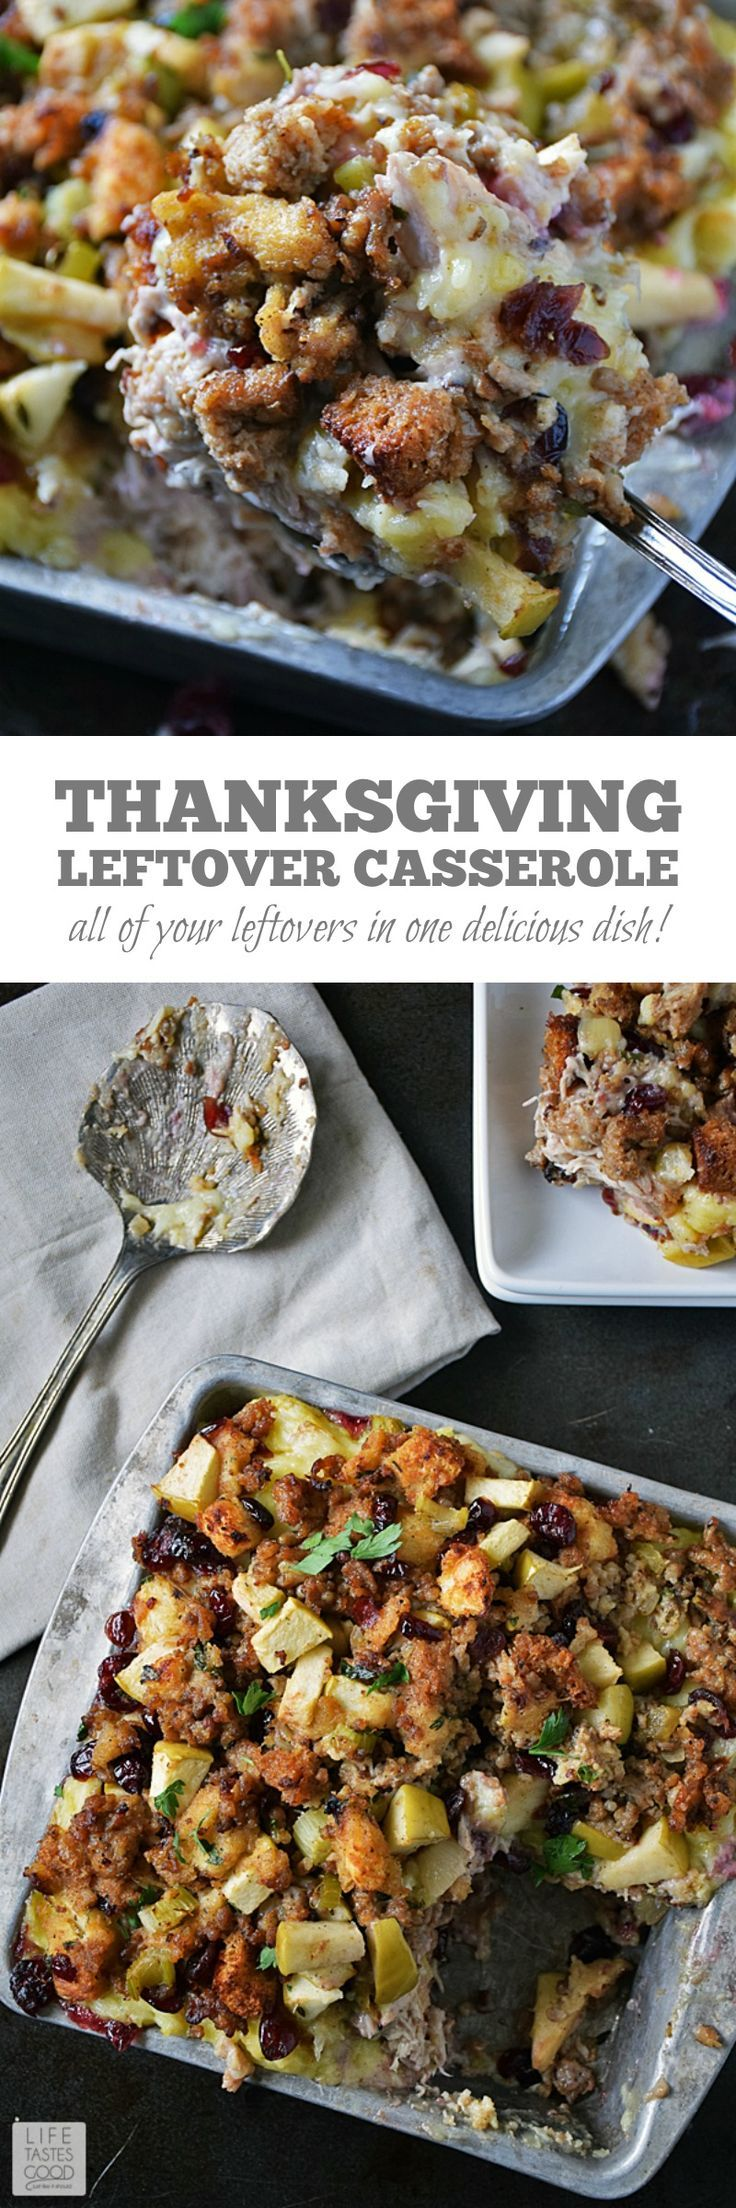 Leftover Thanksgiving Casserole | by Life Tastes Good is a delicious way to use up those holiday leftovers! This is loaded with your leftover turkey, mashed potatoes, stuffing, gravy, and even the cranberry sauce if you like. Plus there's a secret ingredient!! #LTGrecipes #leftovers #ThanksgivingRecipes #HolidayRecipes